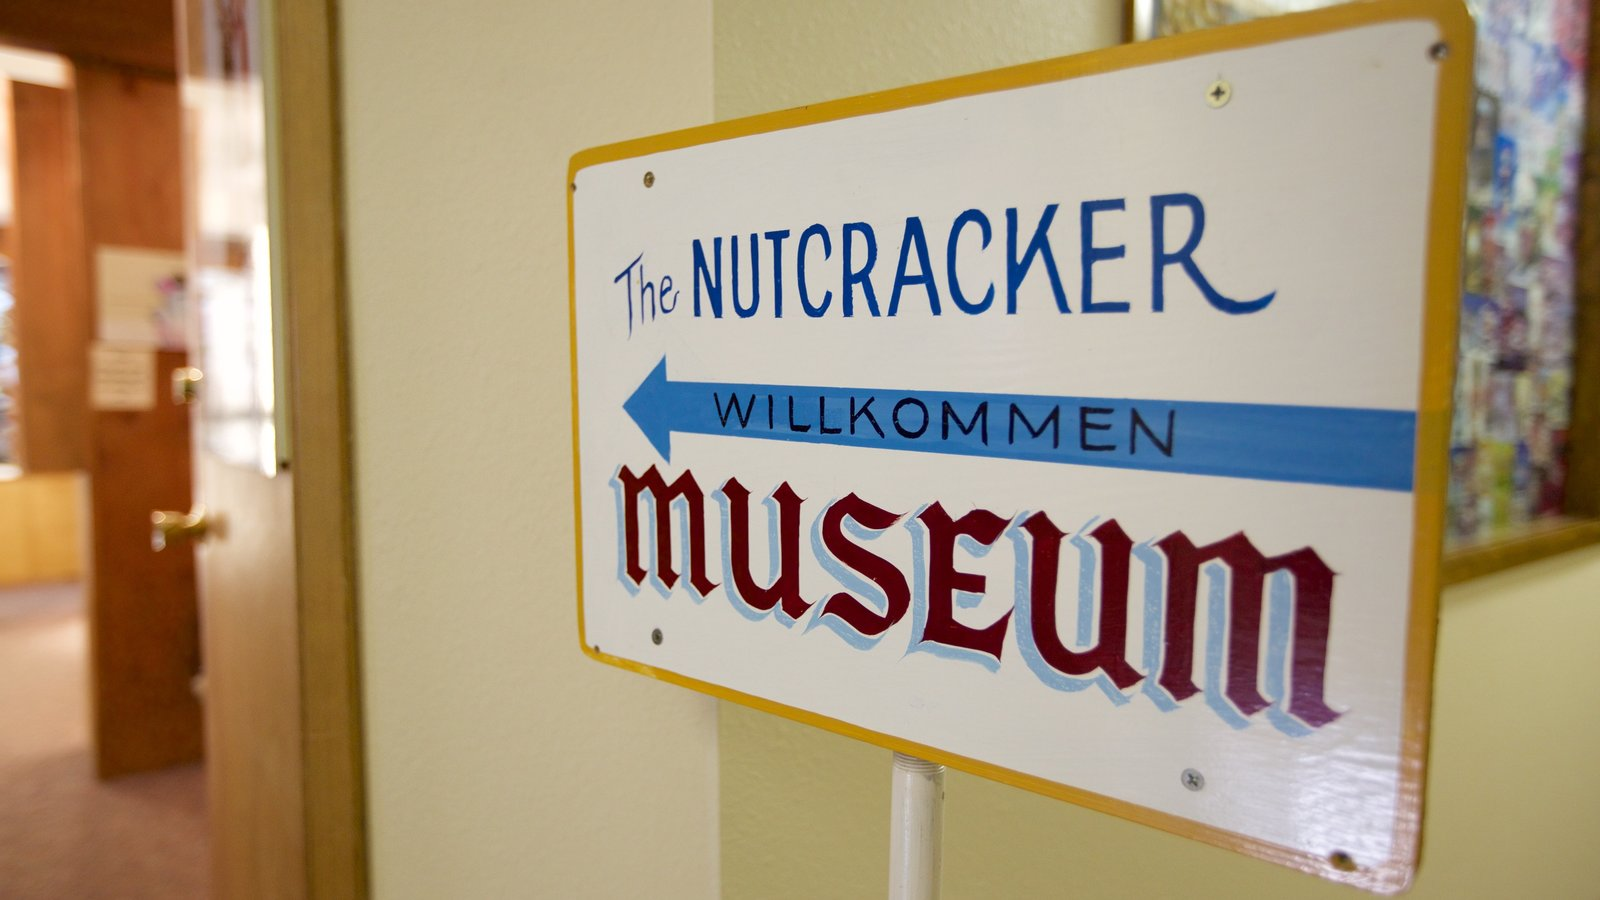 Leavenworth Nutcracker Museum showing interior views and signage